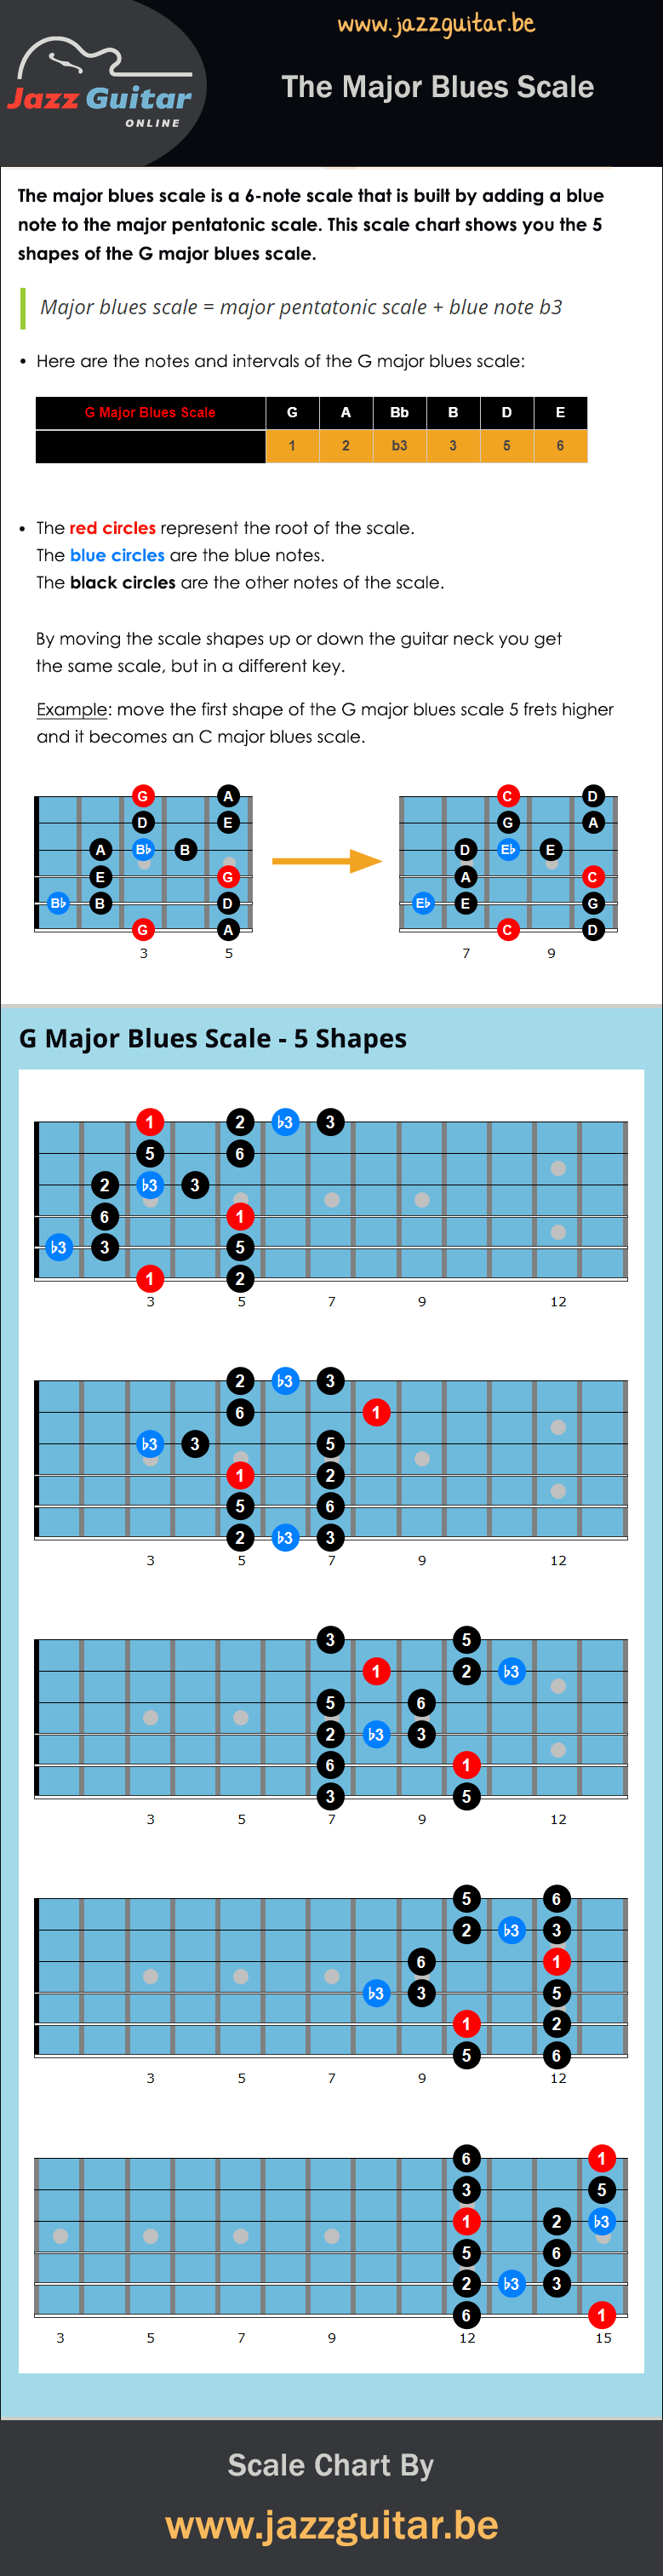 picture about Guitar Pentatonic Scale Chart Printable named Blues Scales - The Greatest and Tiny Blues Scale